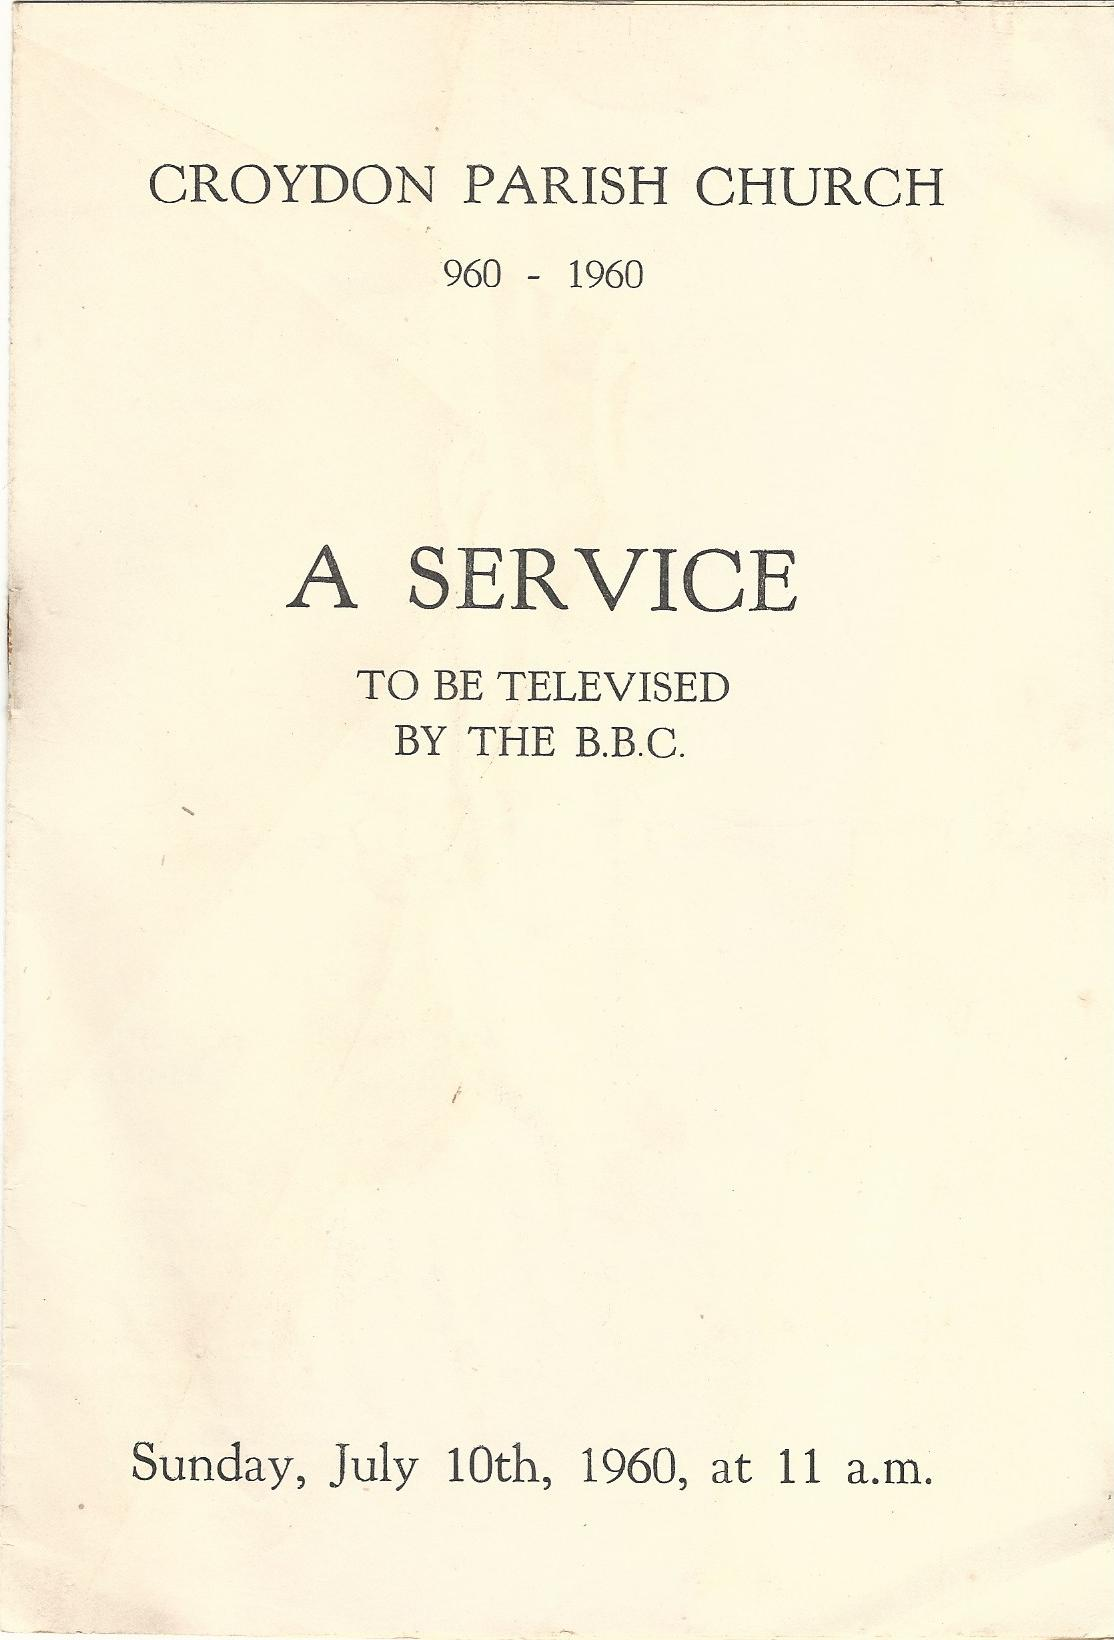 Image for Croydon Parish Church 960-1960 - A Service to by Televised by the B.B.C. - Sunday, July 10th, 1960, at 11 a.m.